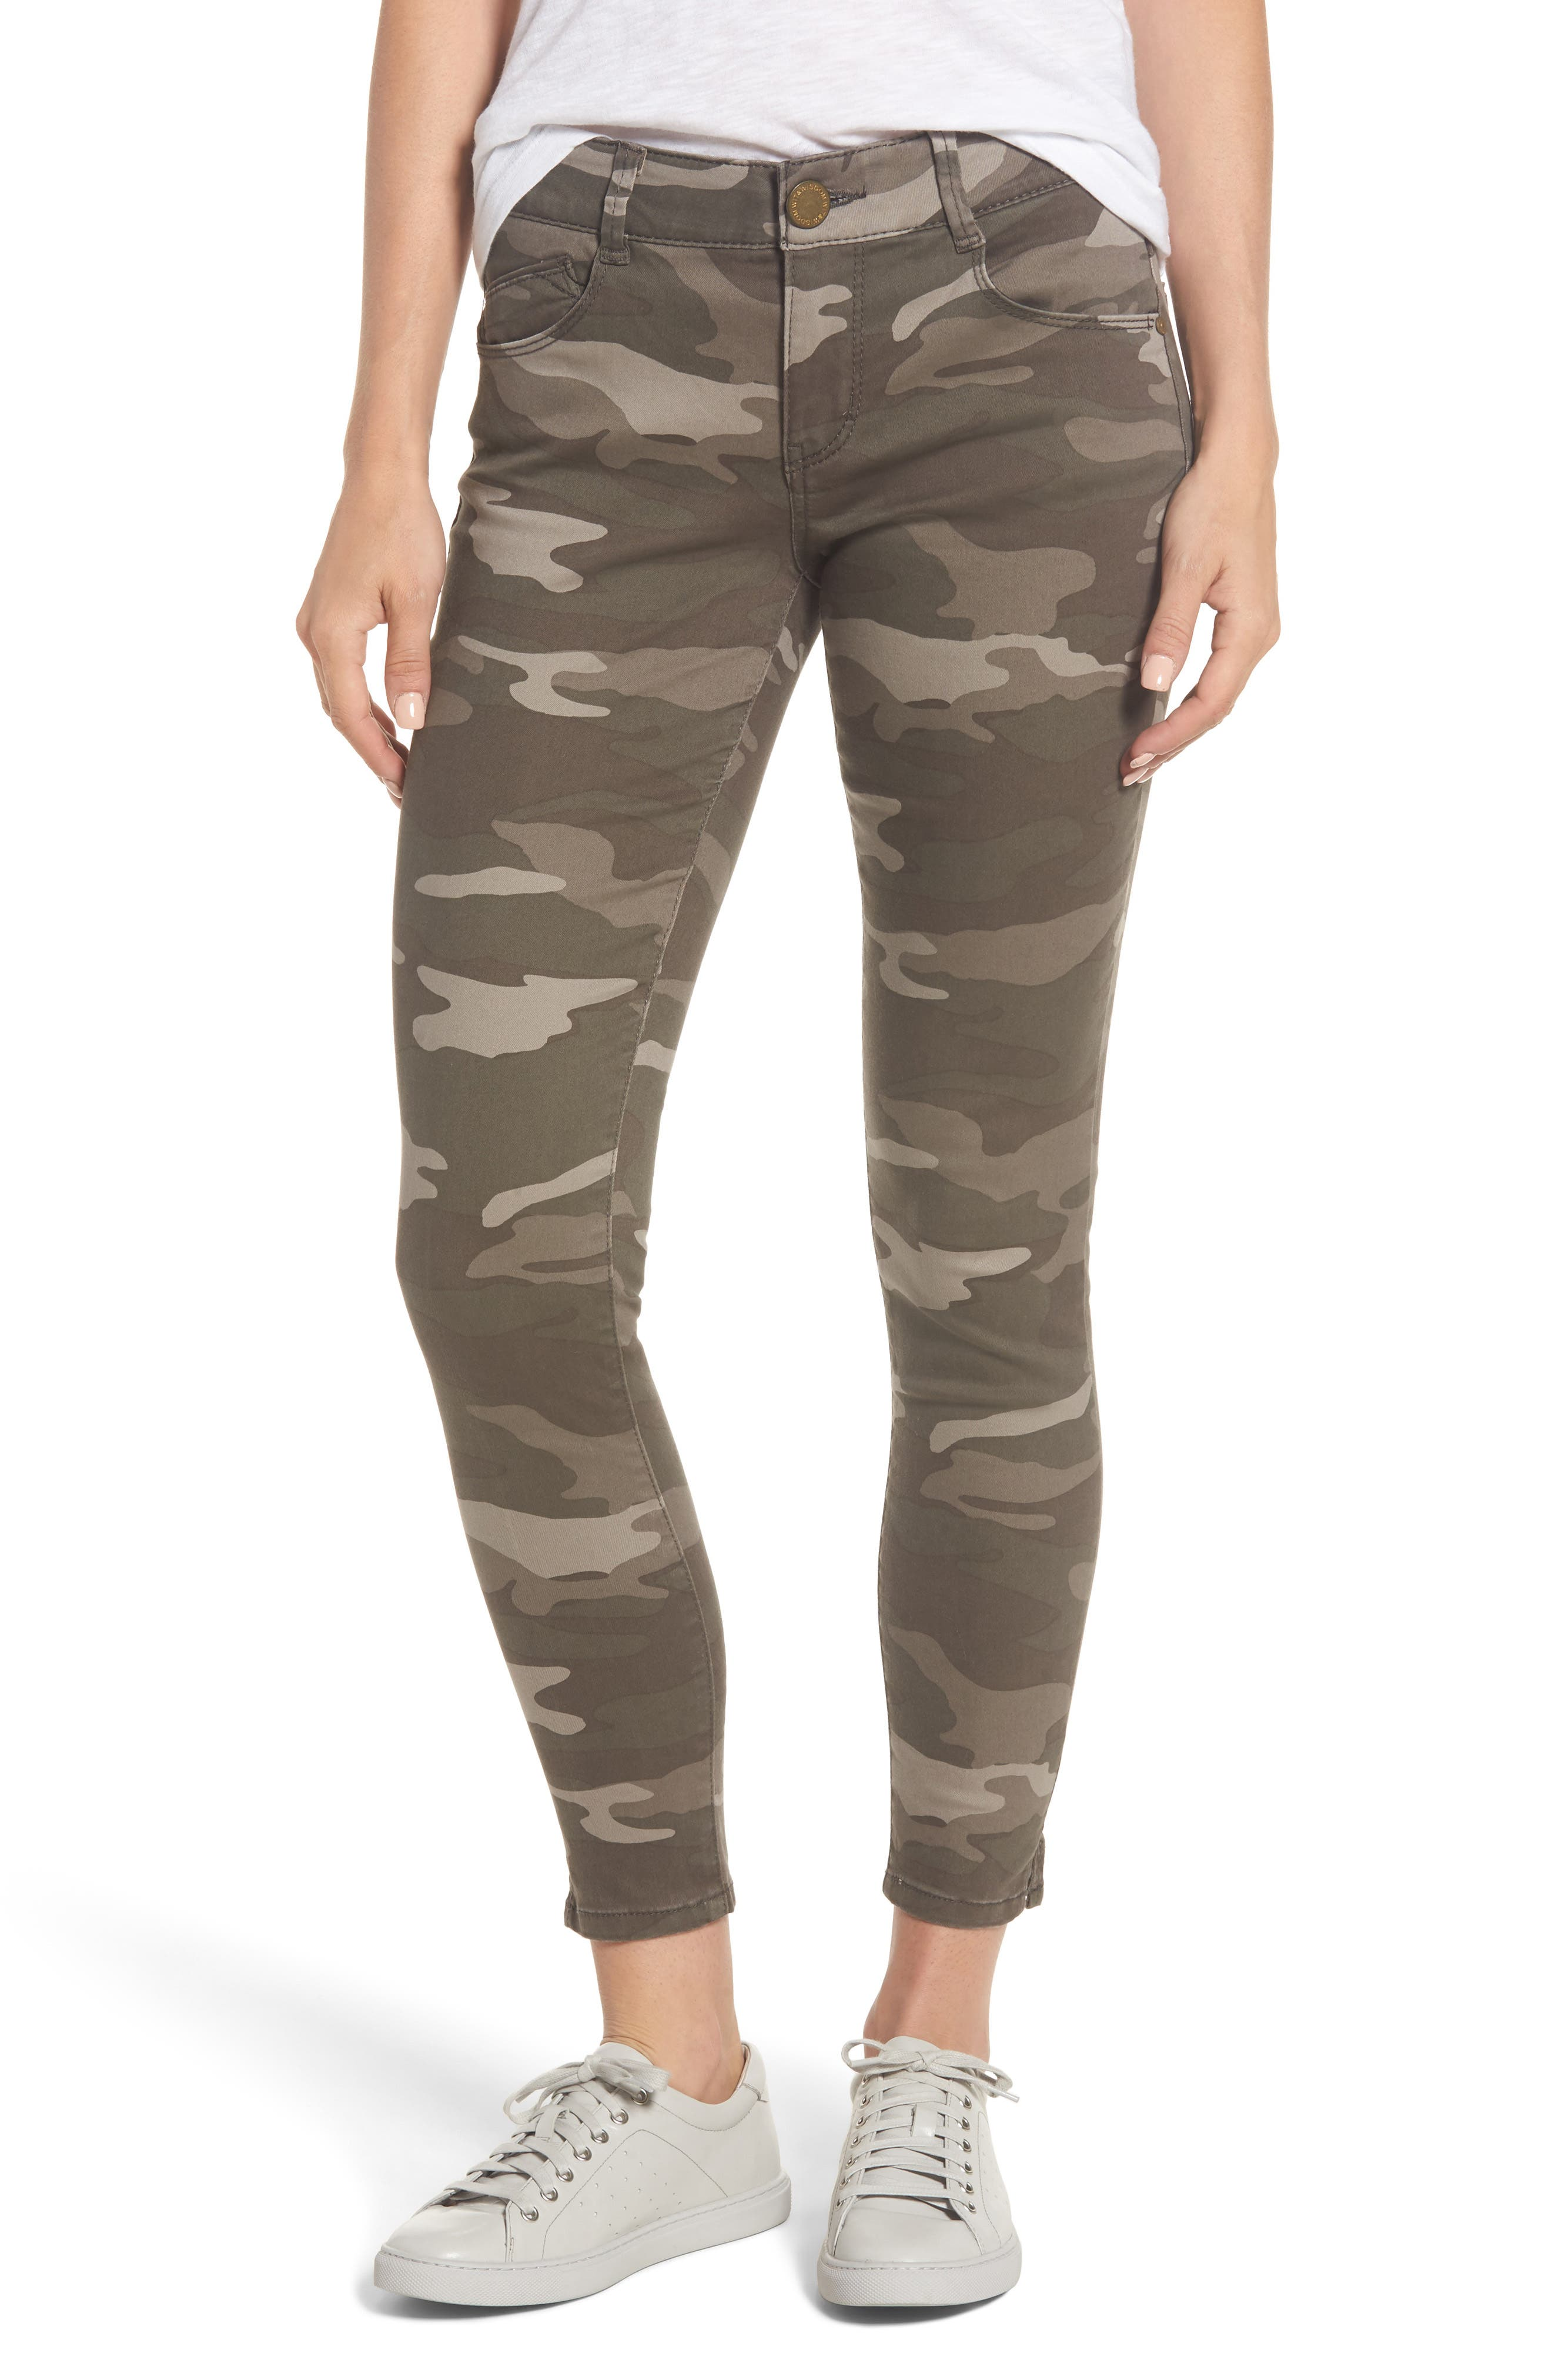 Ab-solution Camo Stretch Ankle Skinny Jeans,                         Main,                         color, 201